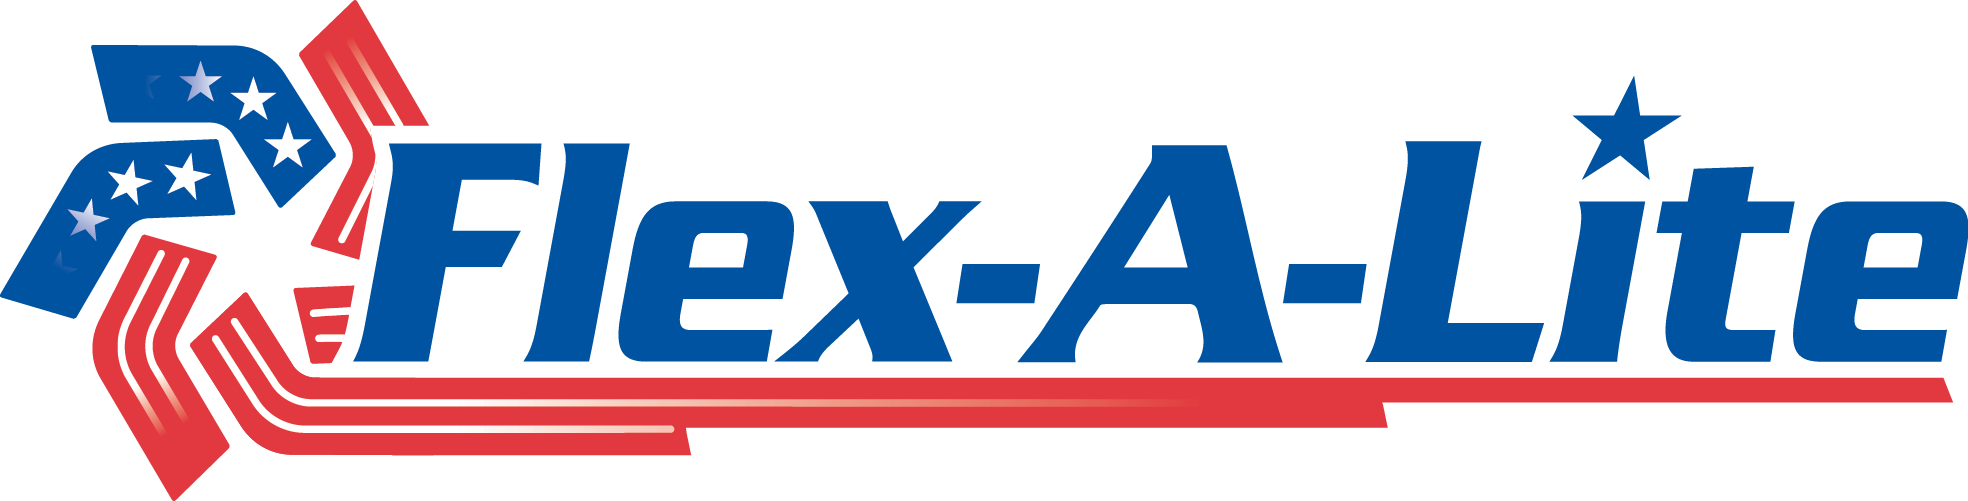 Flex-A-Lite_Logo_Final.png